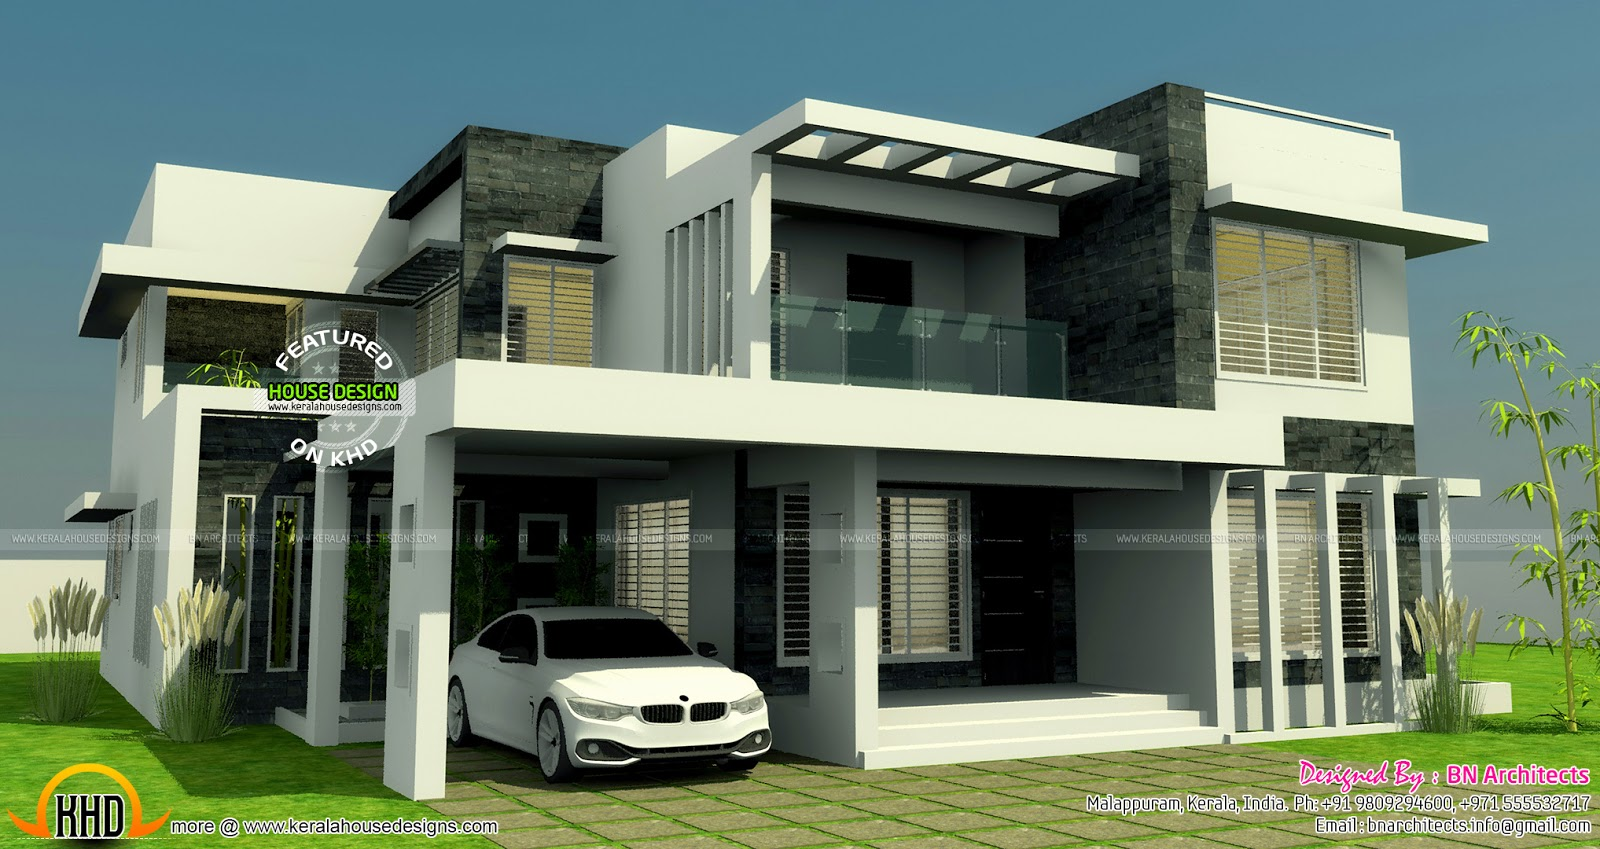 4 Bedroom Contemporary Beautiful Kerala Home Design With